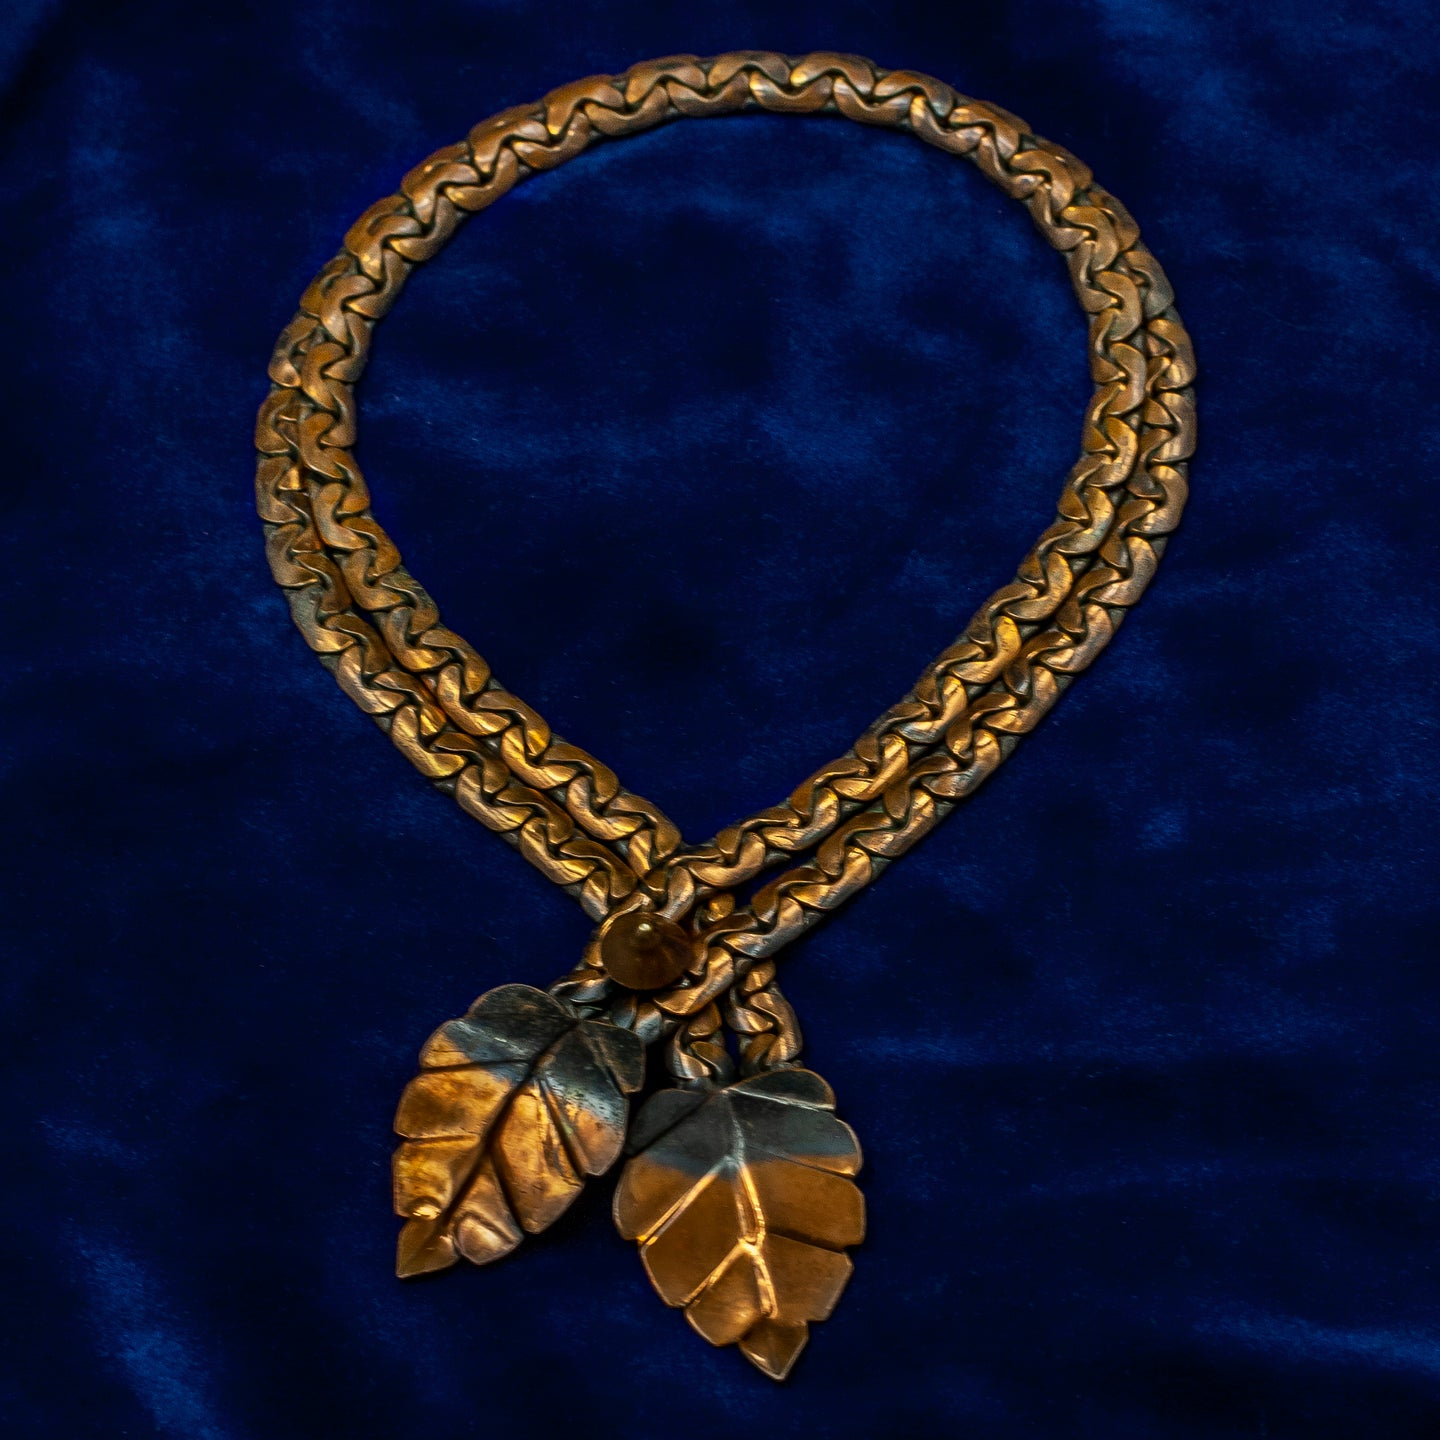 Rebajes Copper Leaf Bolo Necklace c1950